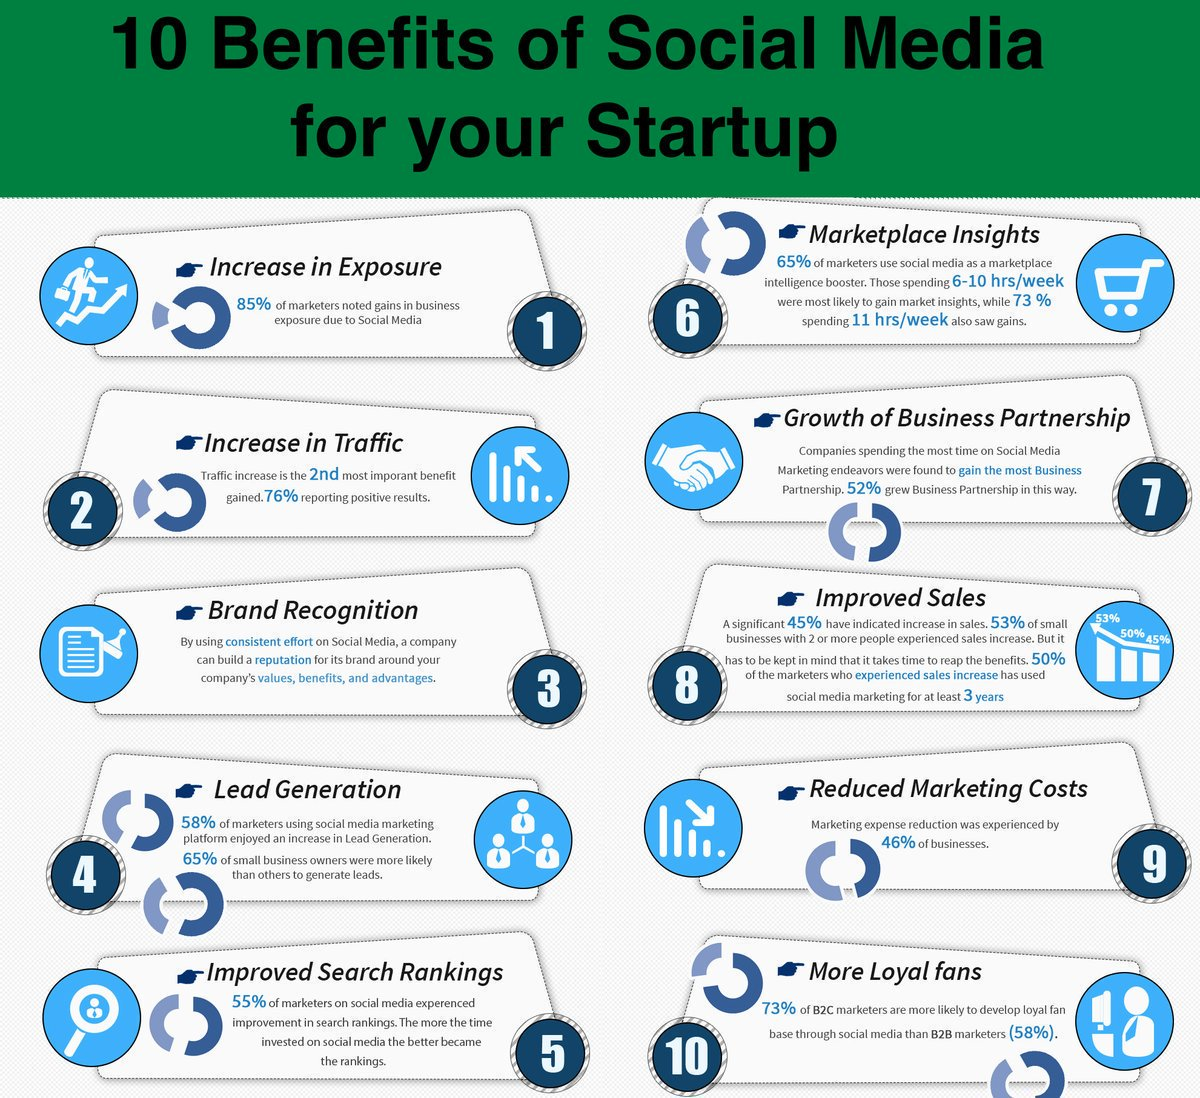 10 Benefits of #SocialMedia for Your #Startup Success [Infographic]  #SMM #SocialMediaMarketing #LeadGeneration #Sales #SEO #Branding<br>http://pic.twitter.com/zoW4IqYv38